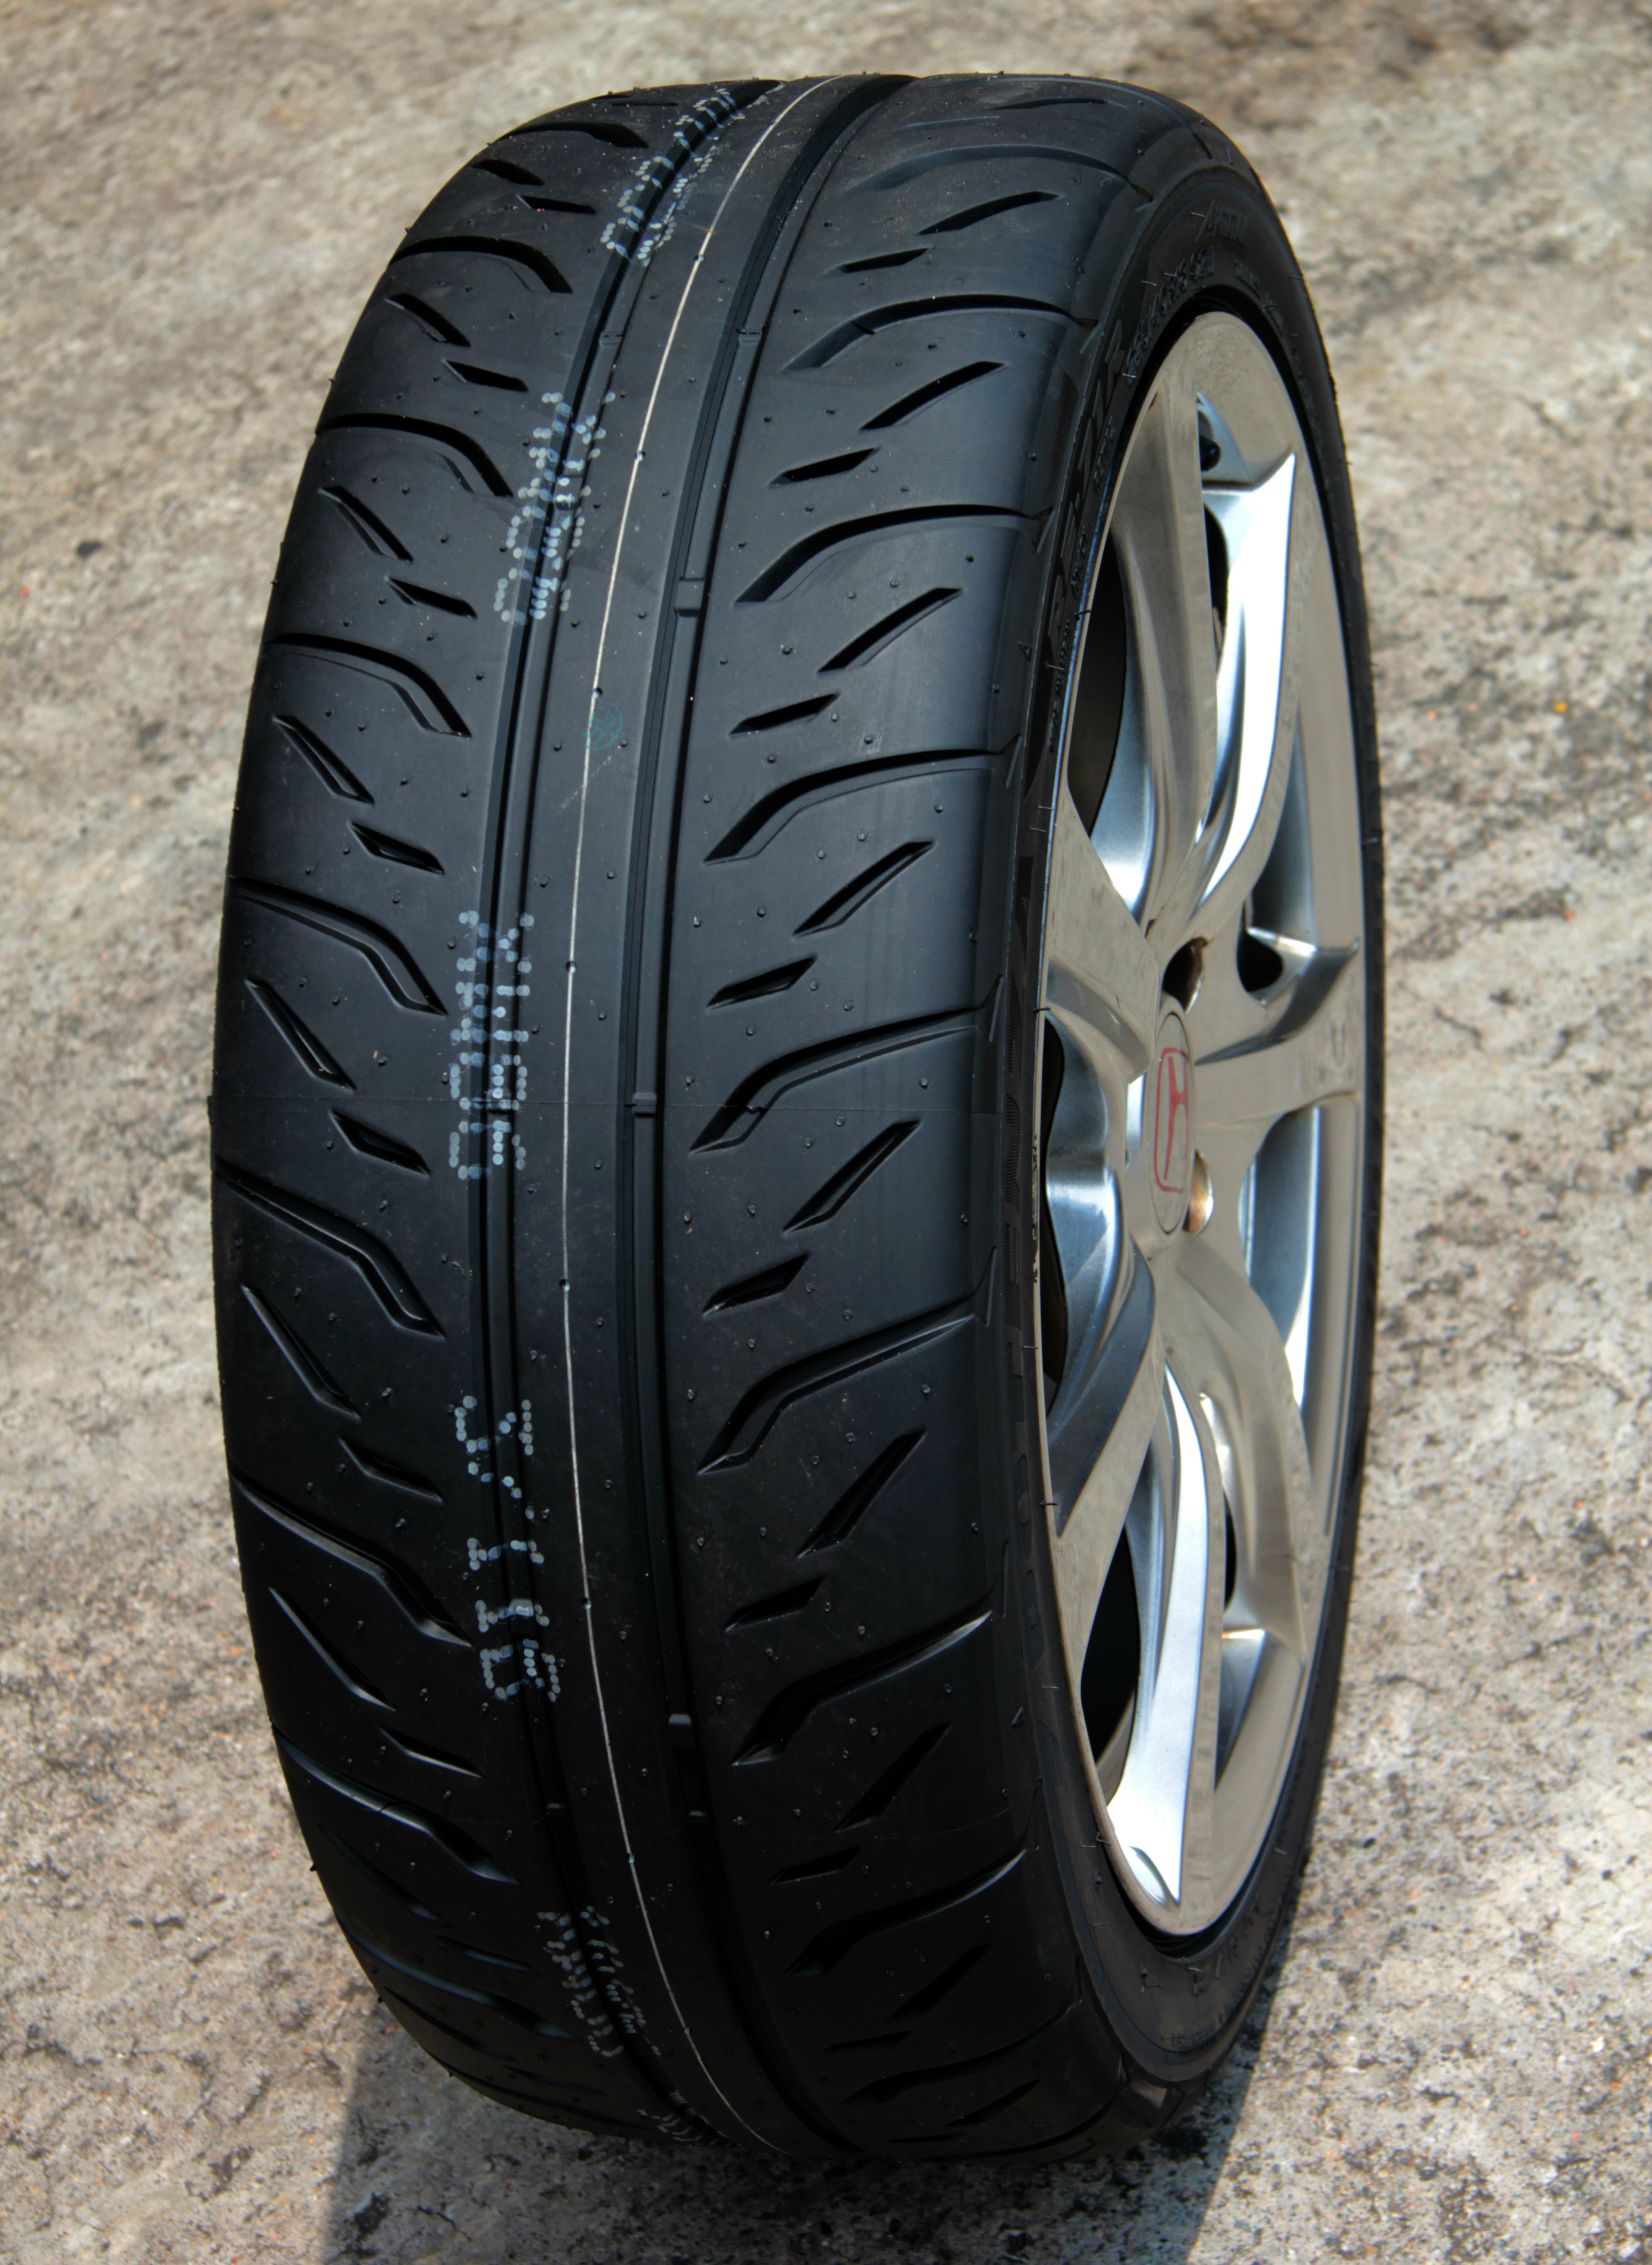 The Bridgestone Potenza RE-71R is a semi-slick tyre tuned for agile steering, confident cornering and maximum handling.